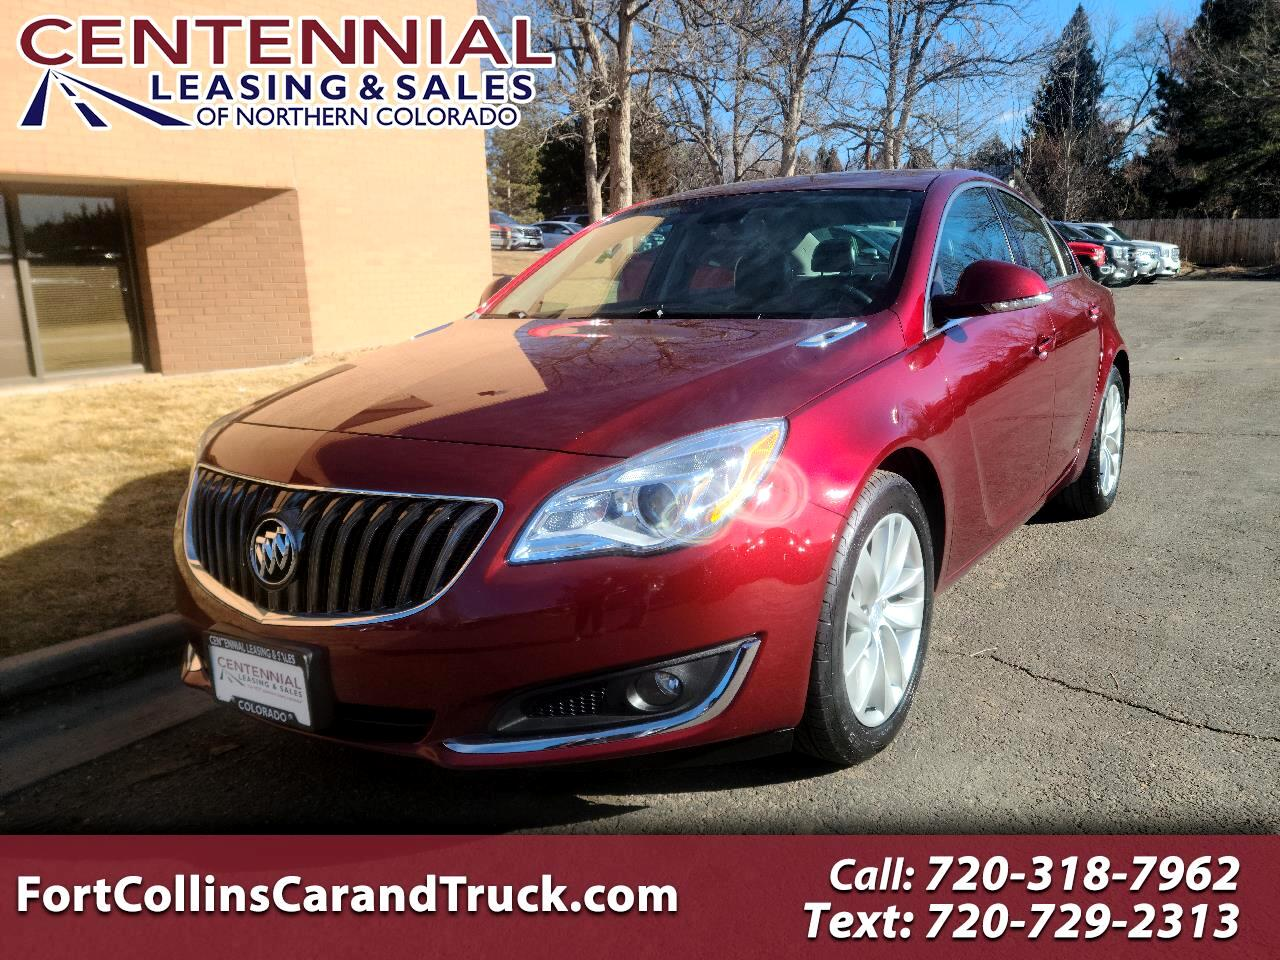 Buick Regal 4dr Sdn FWD 2017